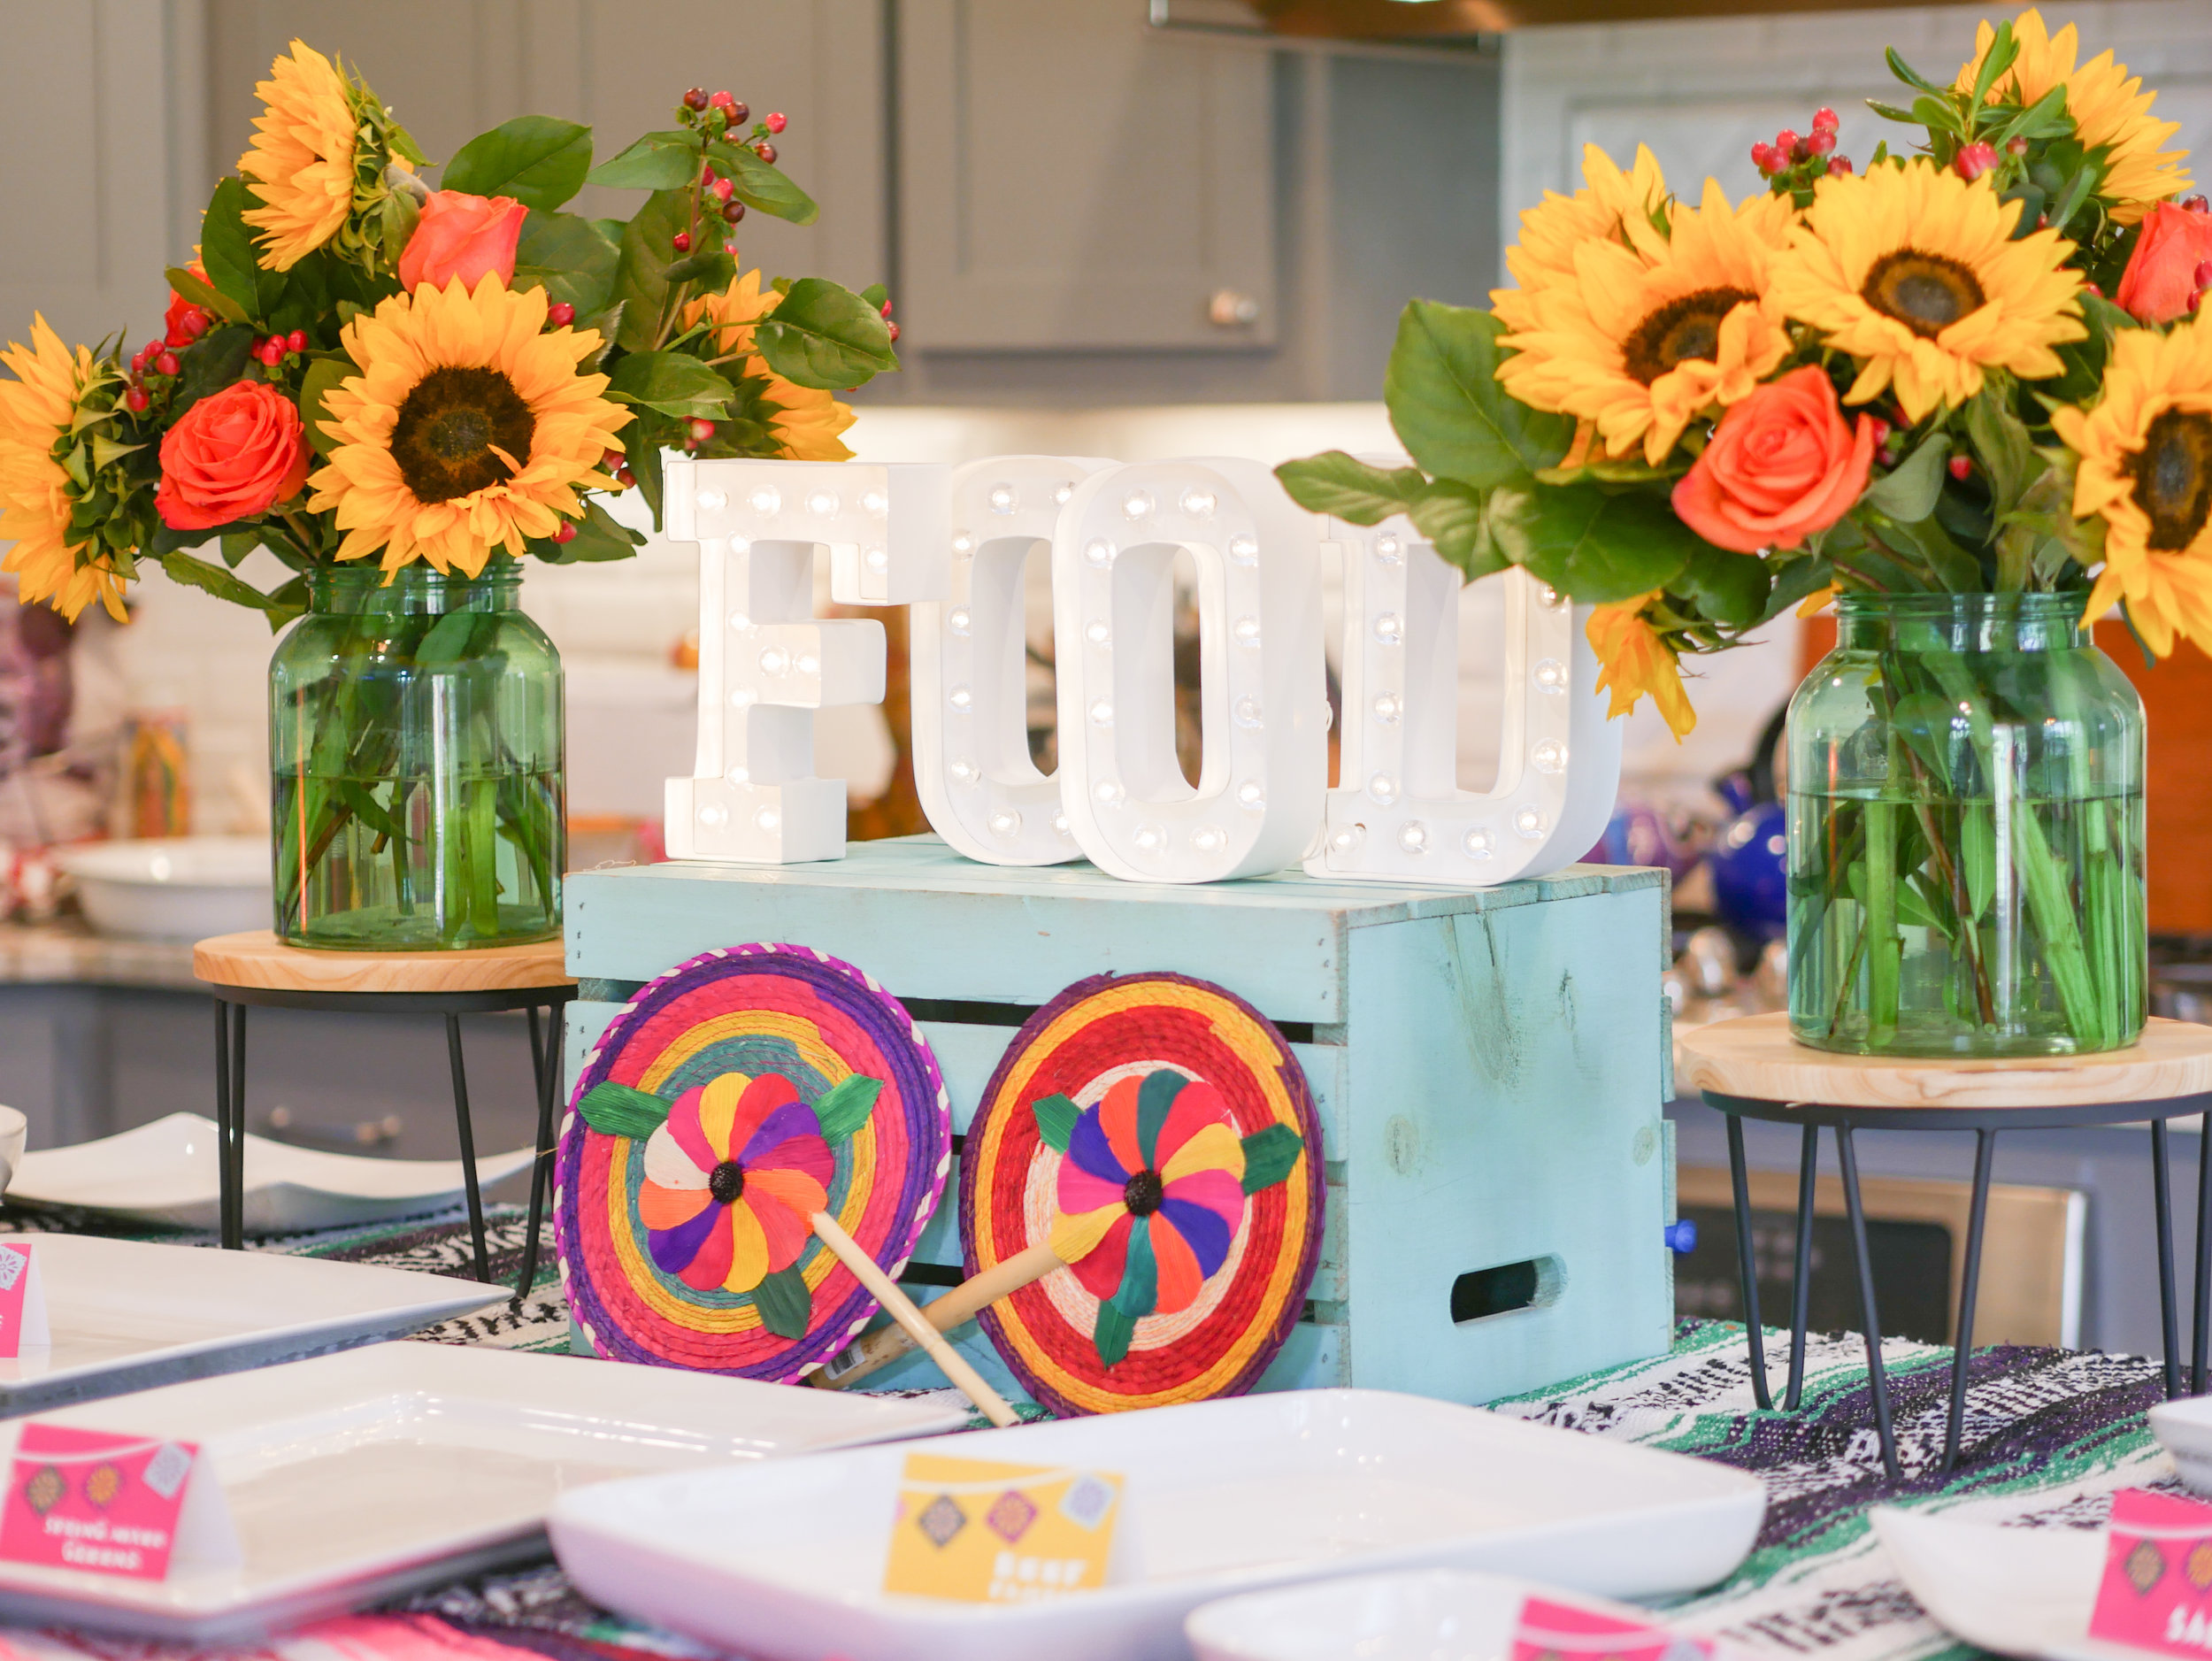 Create a fun and colorful food station for your fiesta party with colorful flowers and food labels. Styling by Austin Texas party planner Mint Event Design www.minteventdesign.com